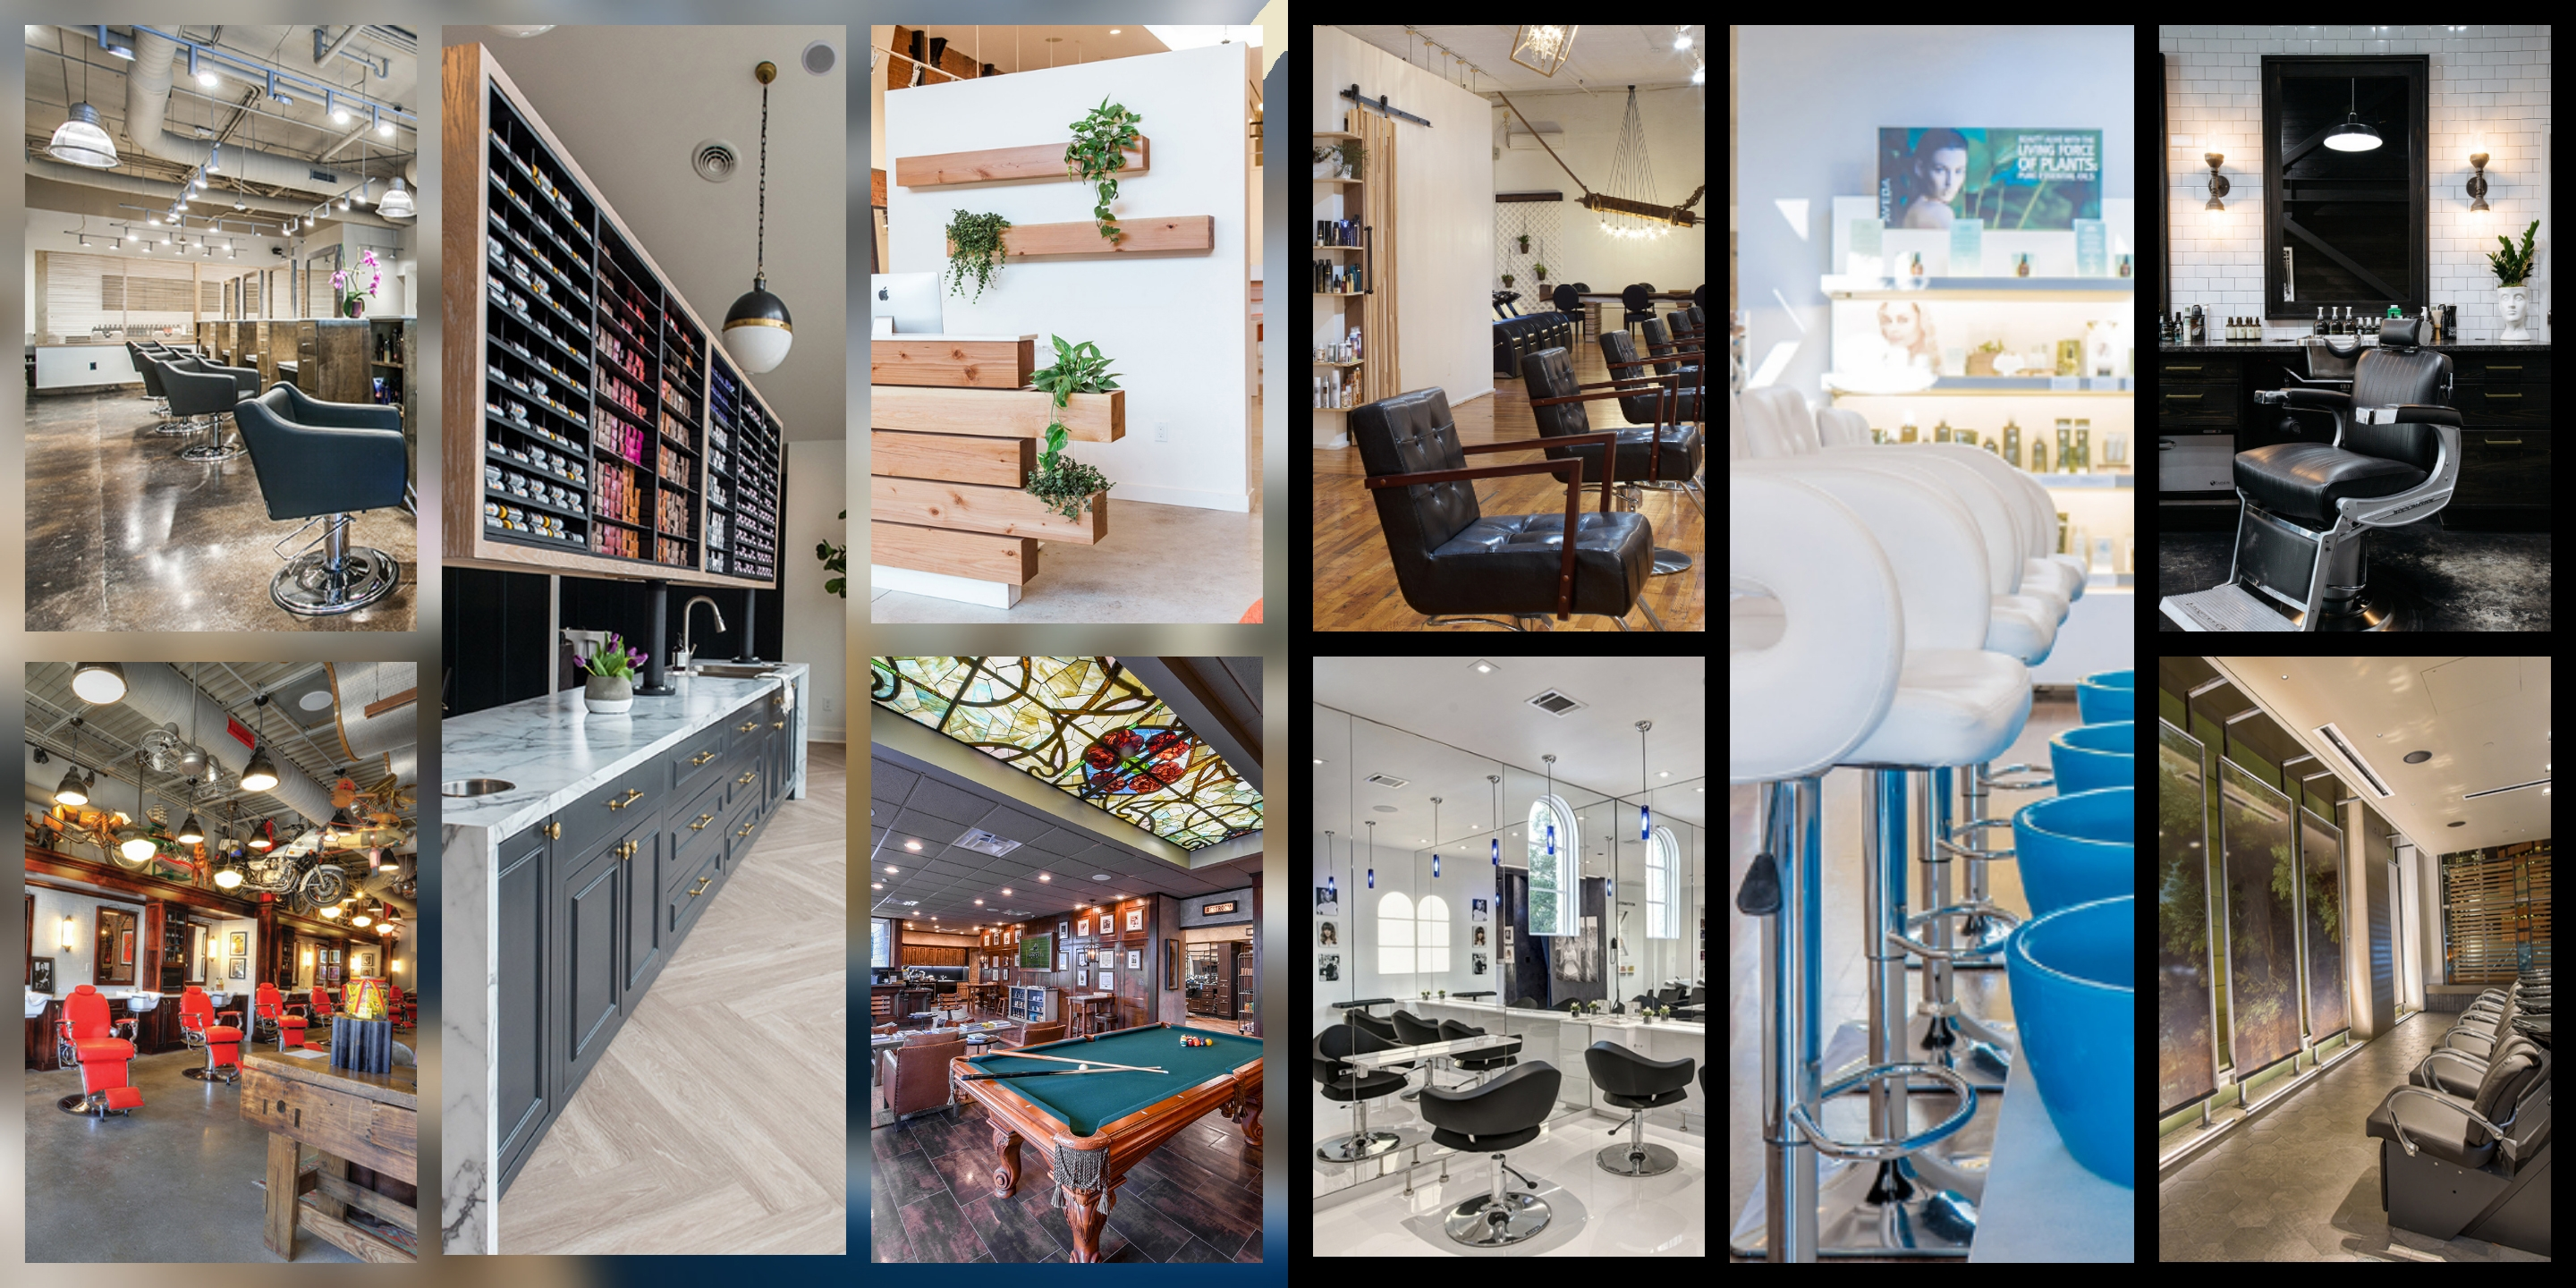 Announcing the 2018 Salons of the Year Finalists